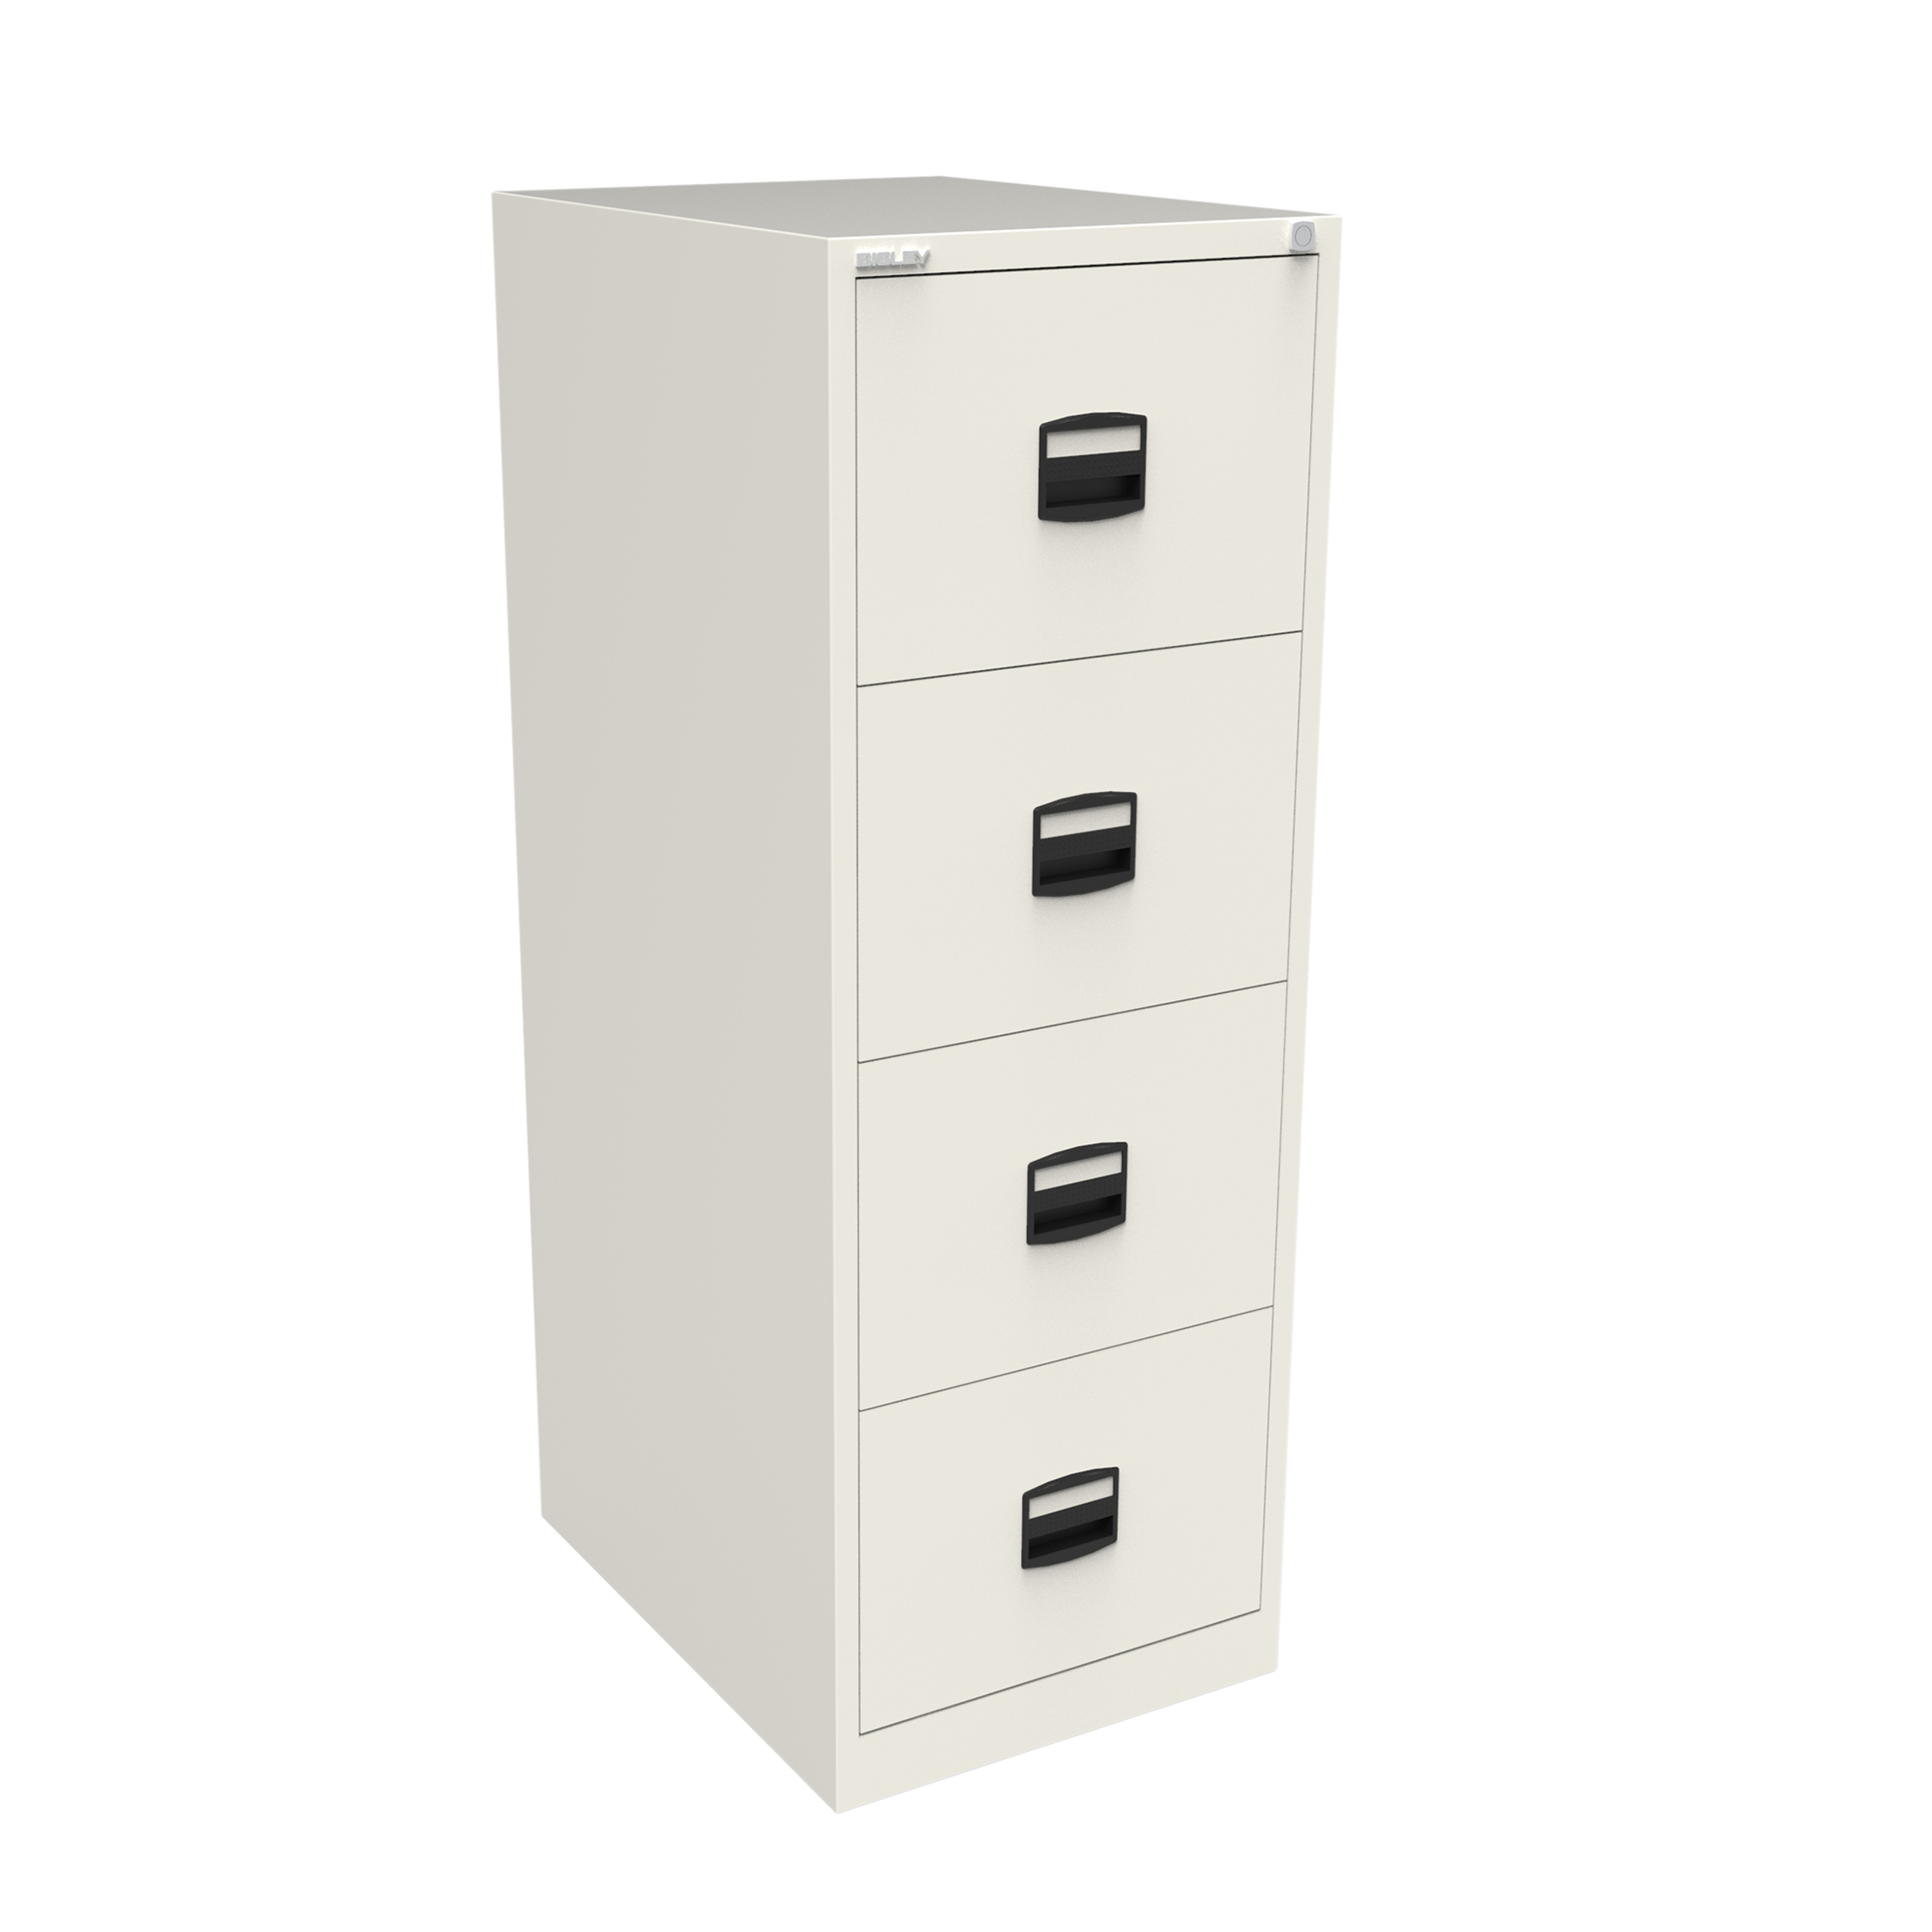 Filing cabinets or accesories Trexus 4 Drawer Filing Cabinet 470x622x1321mm Chalk White Ref CC4H1A-ab9